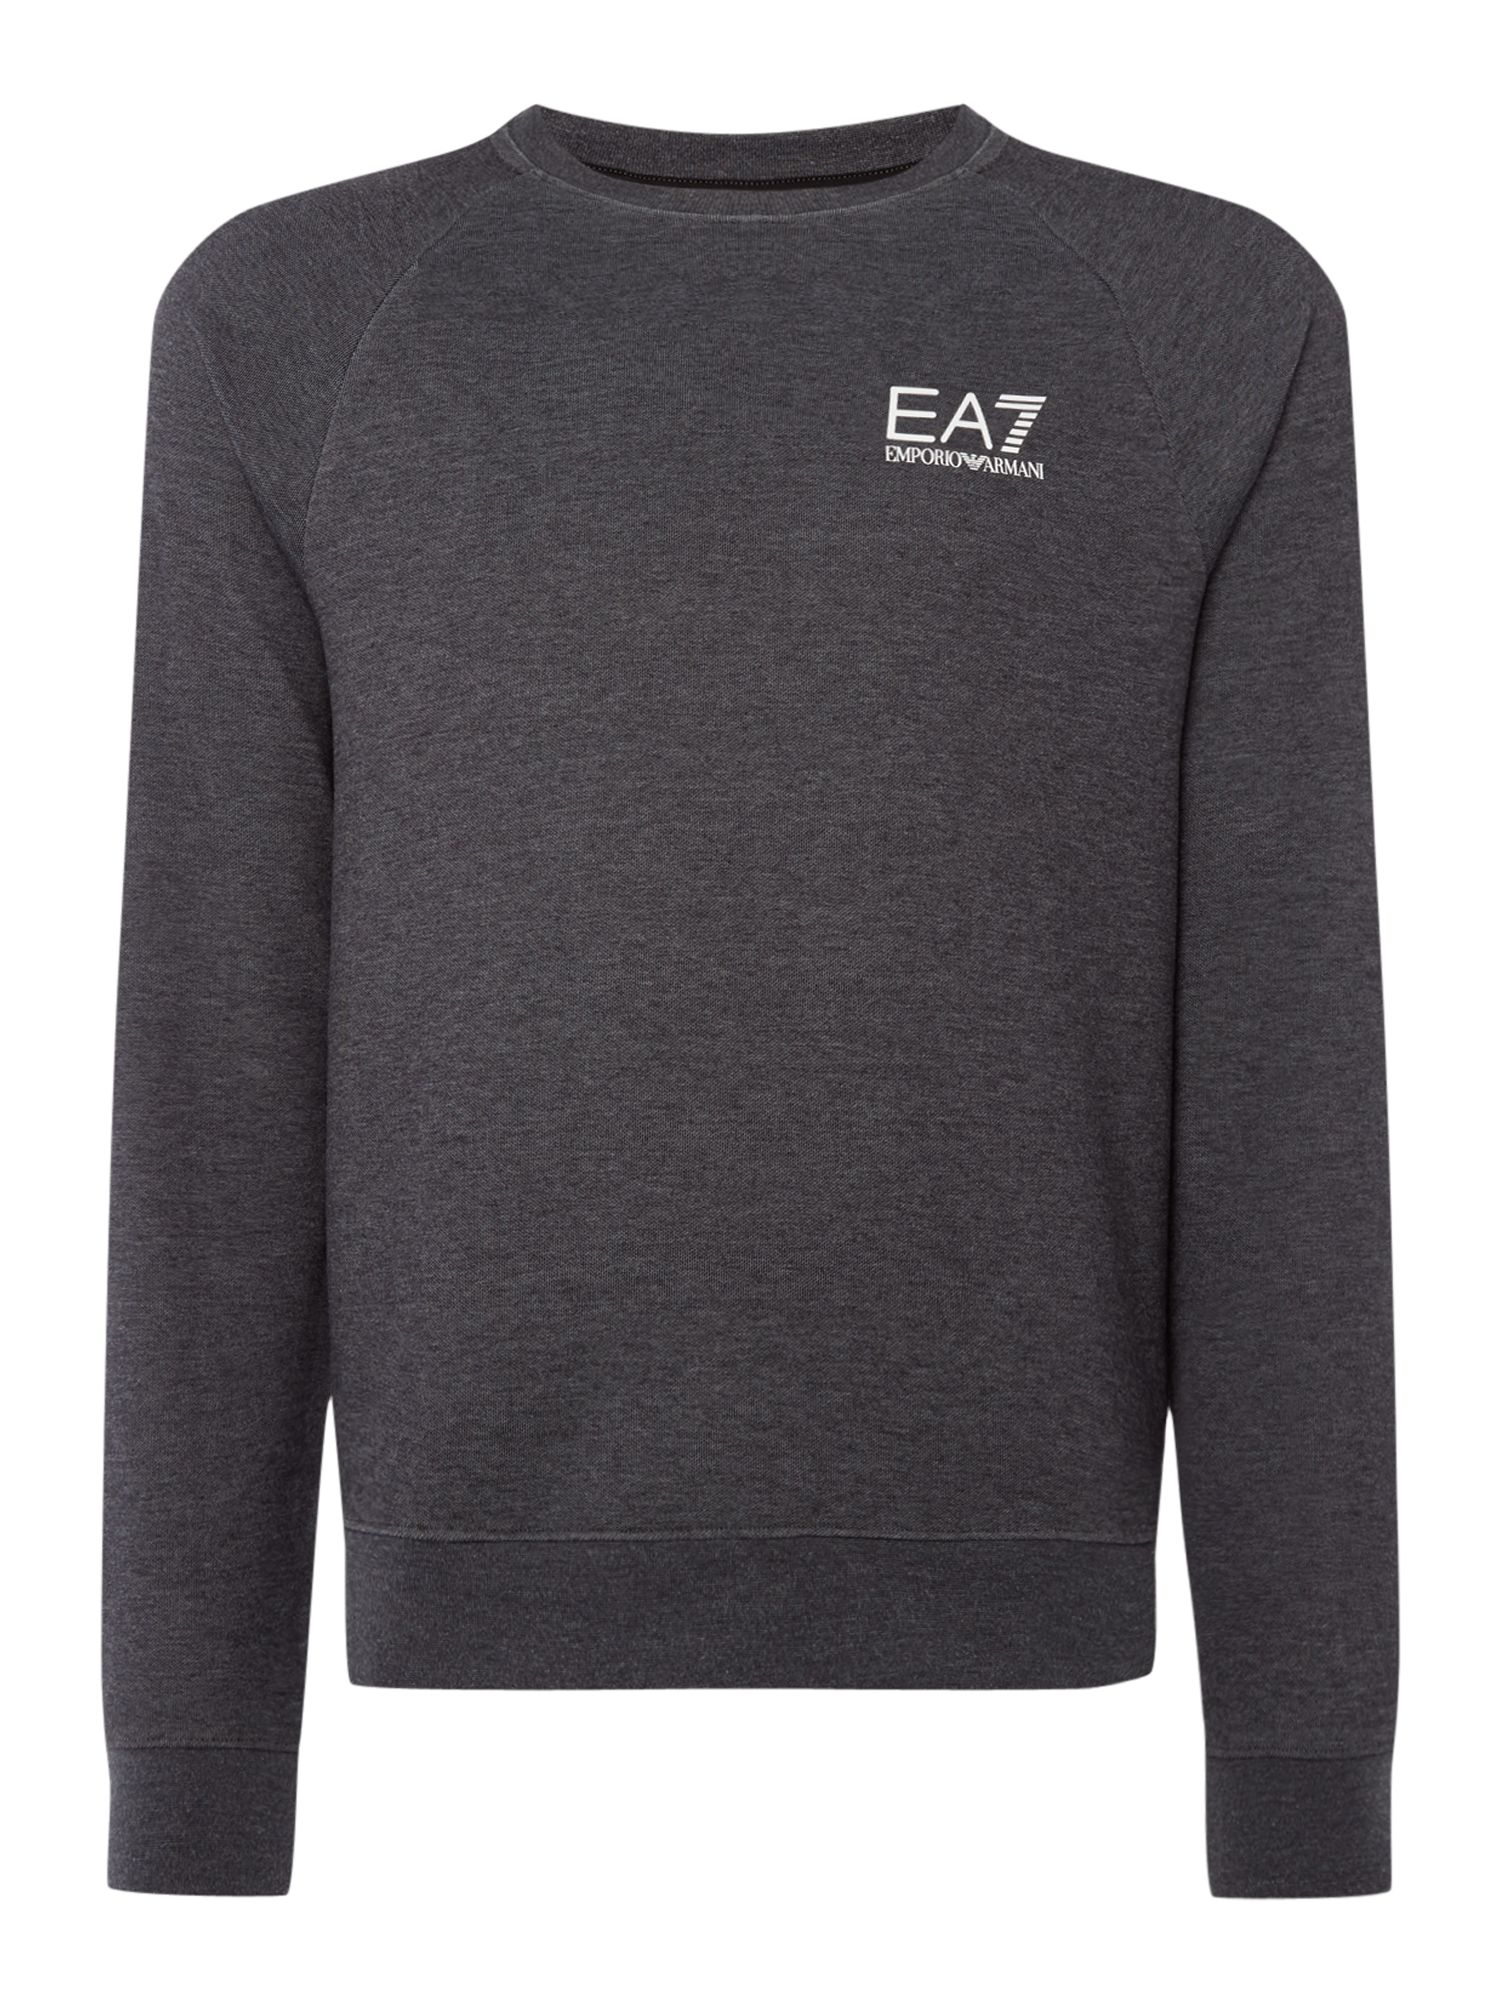 Men's EA7 Core ID crew neck jumper, Dark Grey